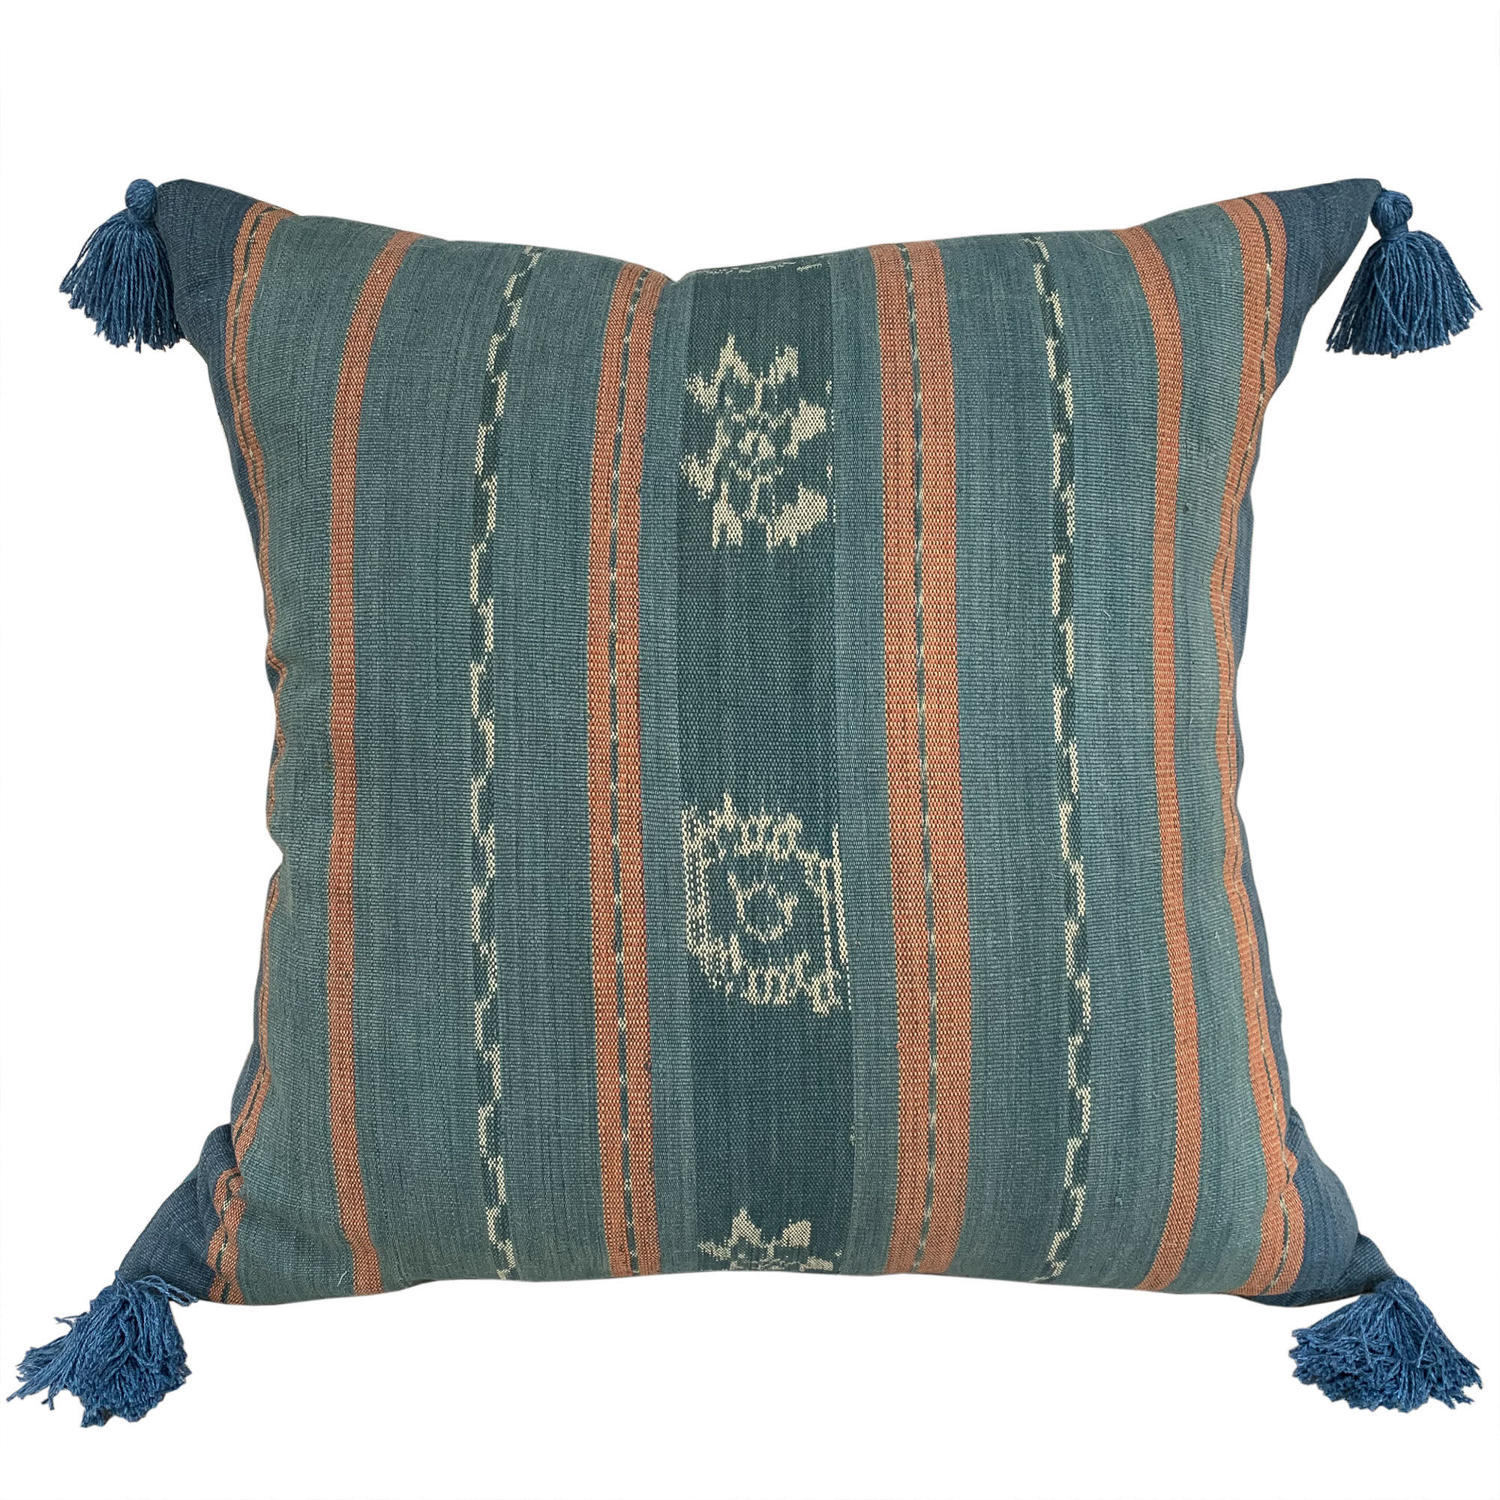 Large Flores ikat cushions with tassels